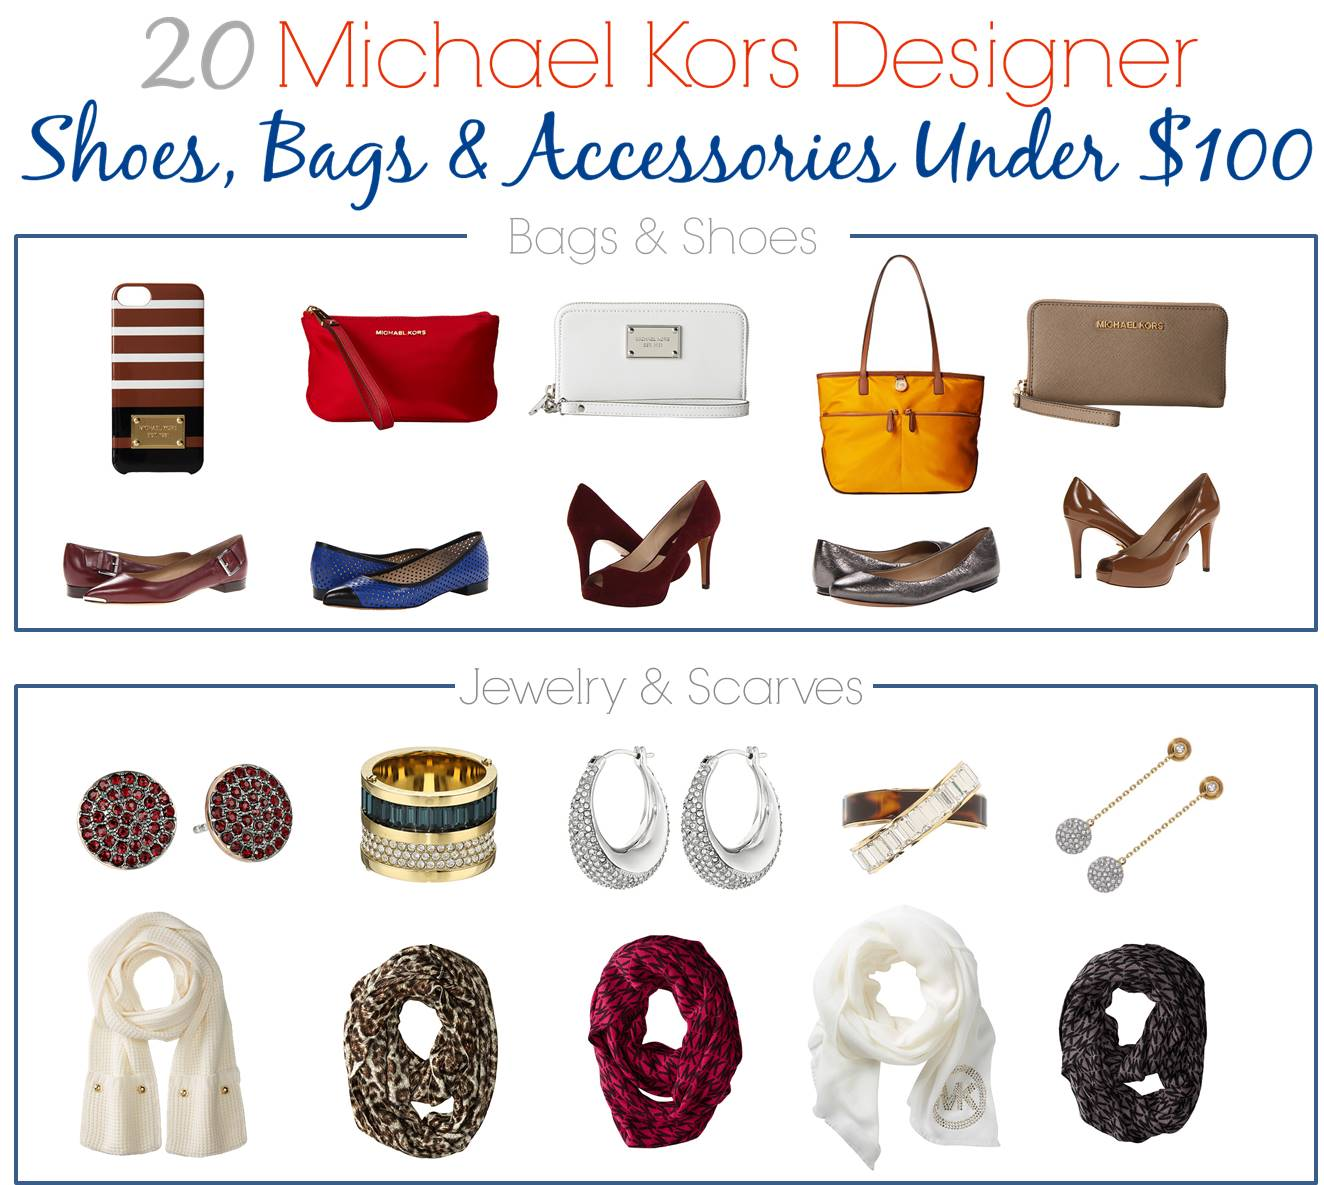 b09d04e6eca1 round up of michael kors accessories from 6PM for under $100 rock and drool